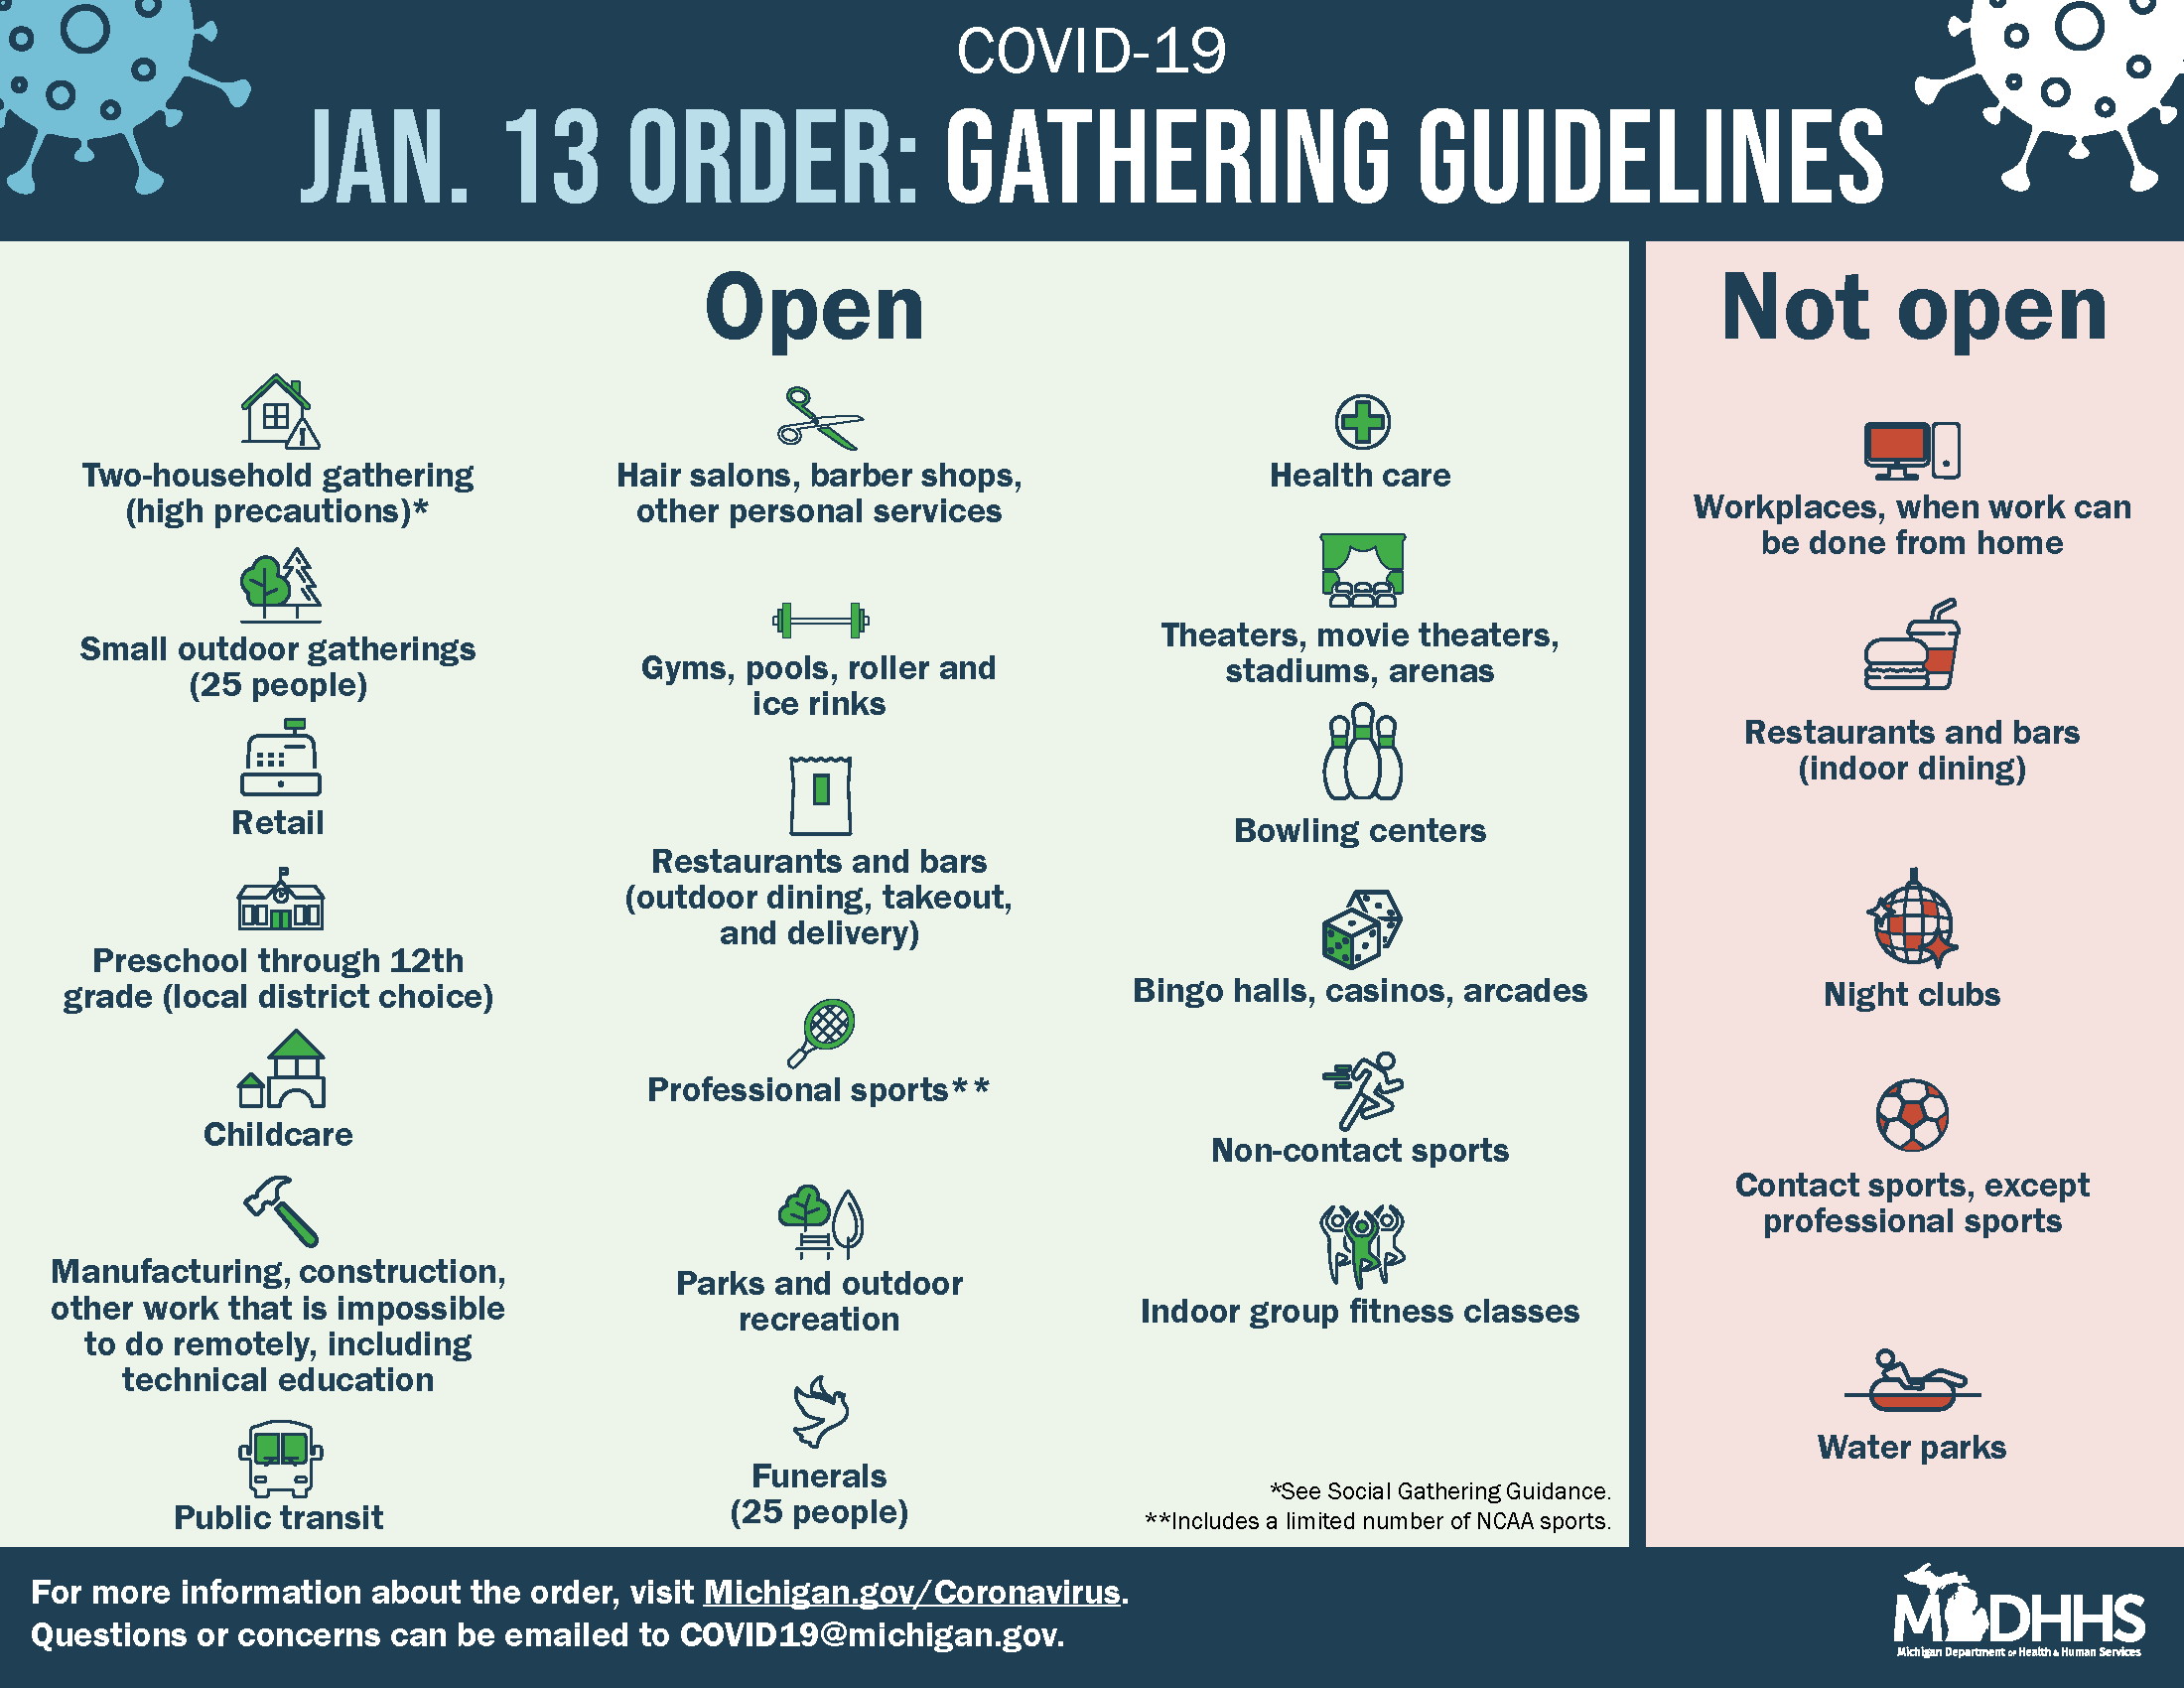 January 13 covid gathering guidelines